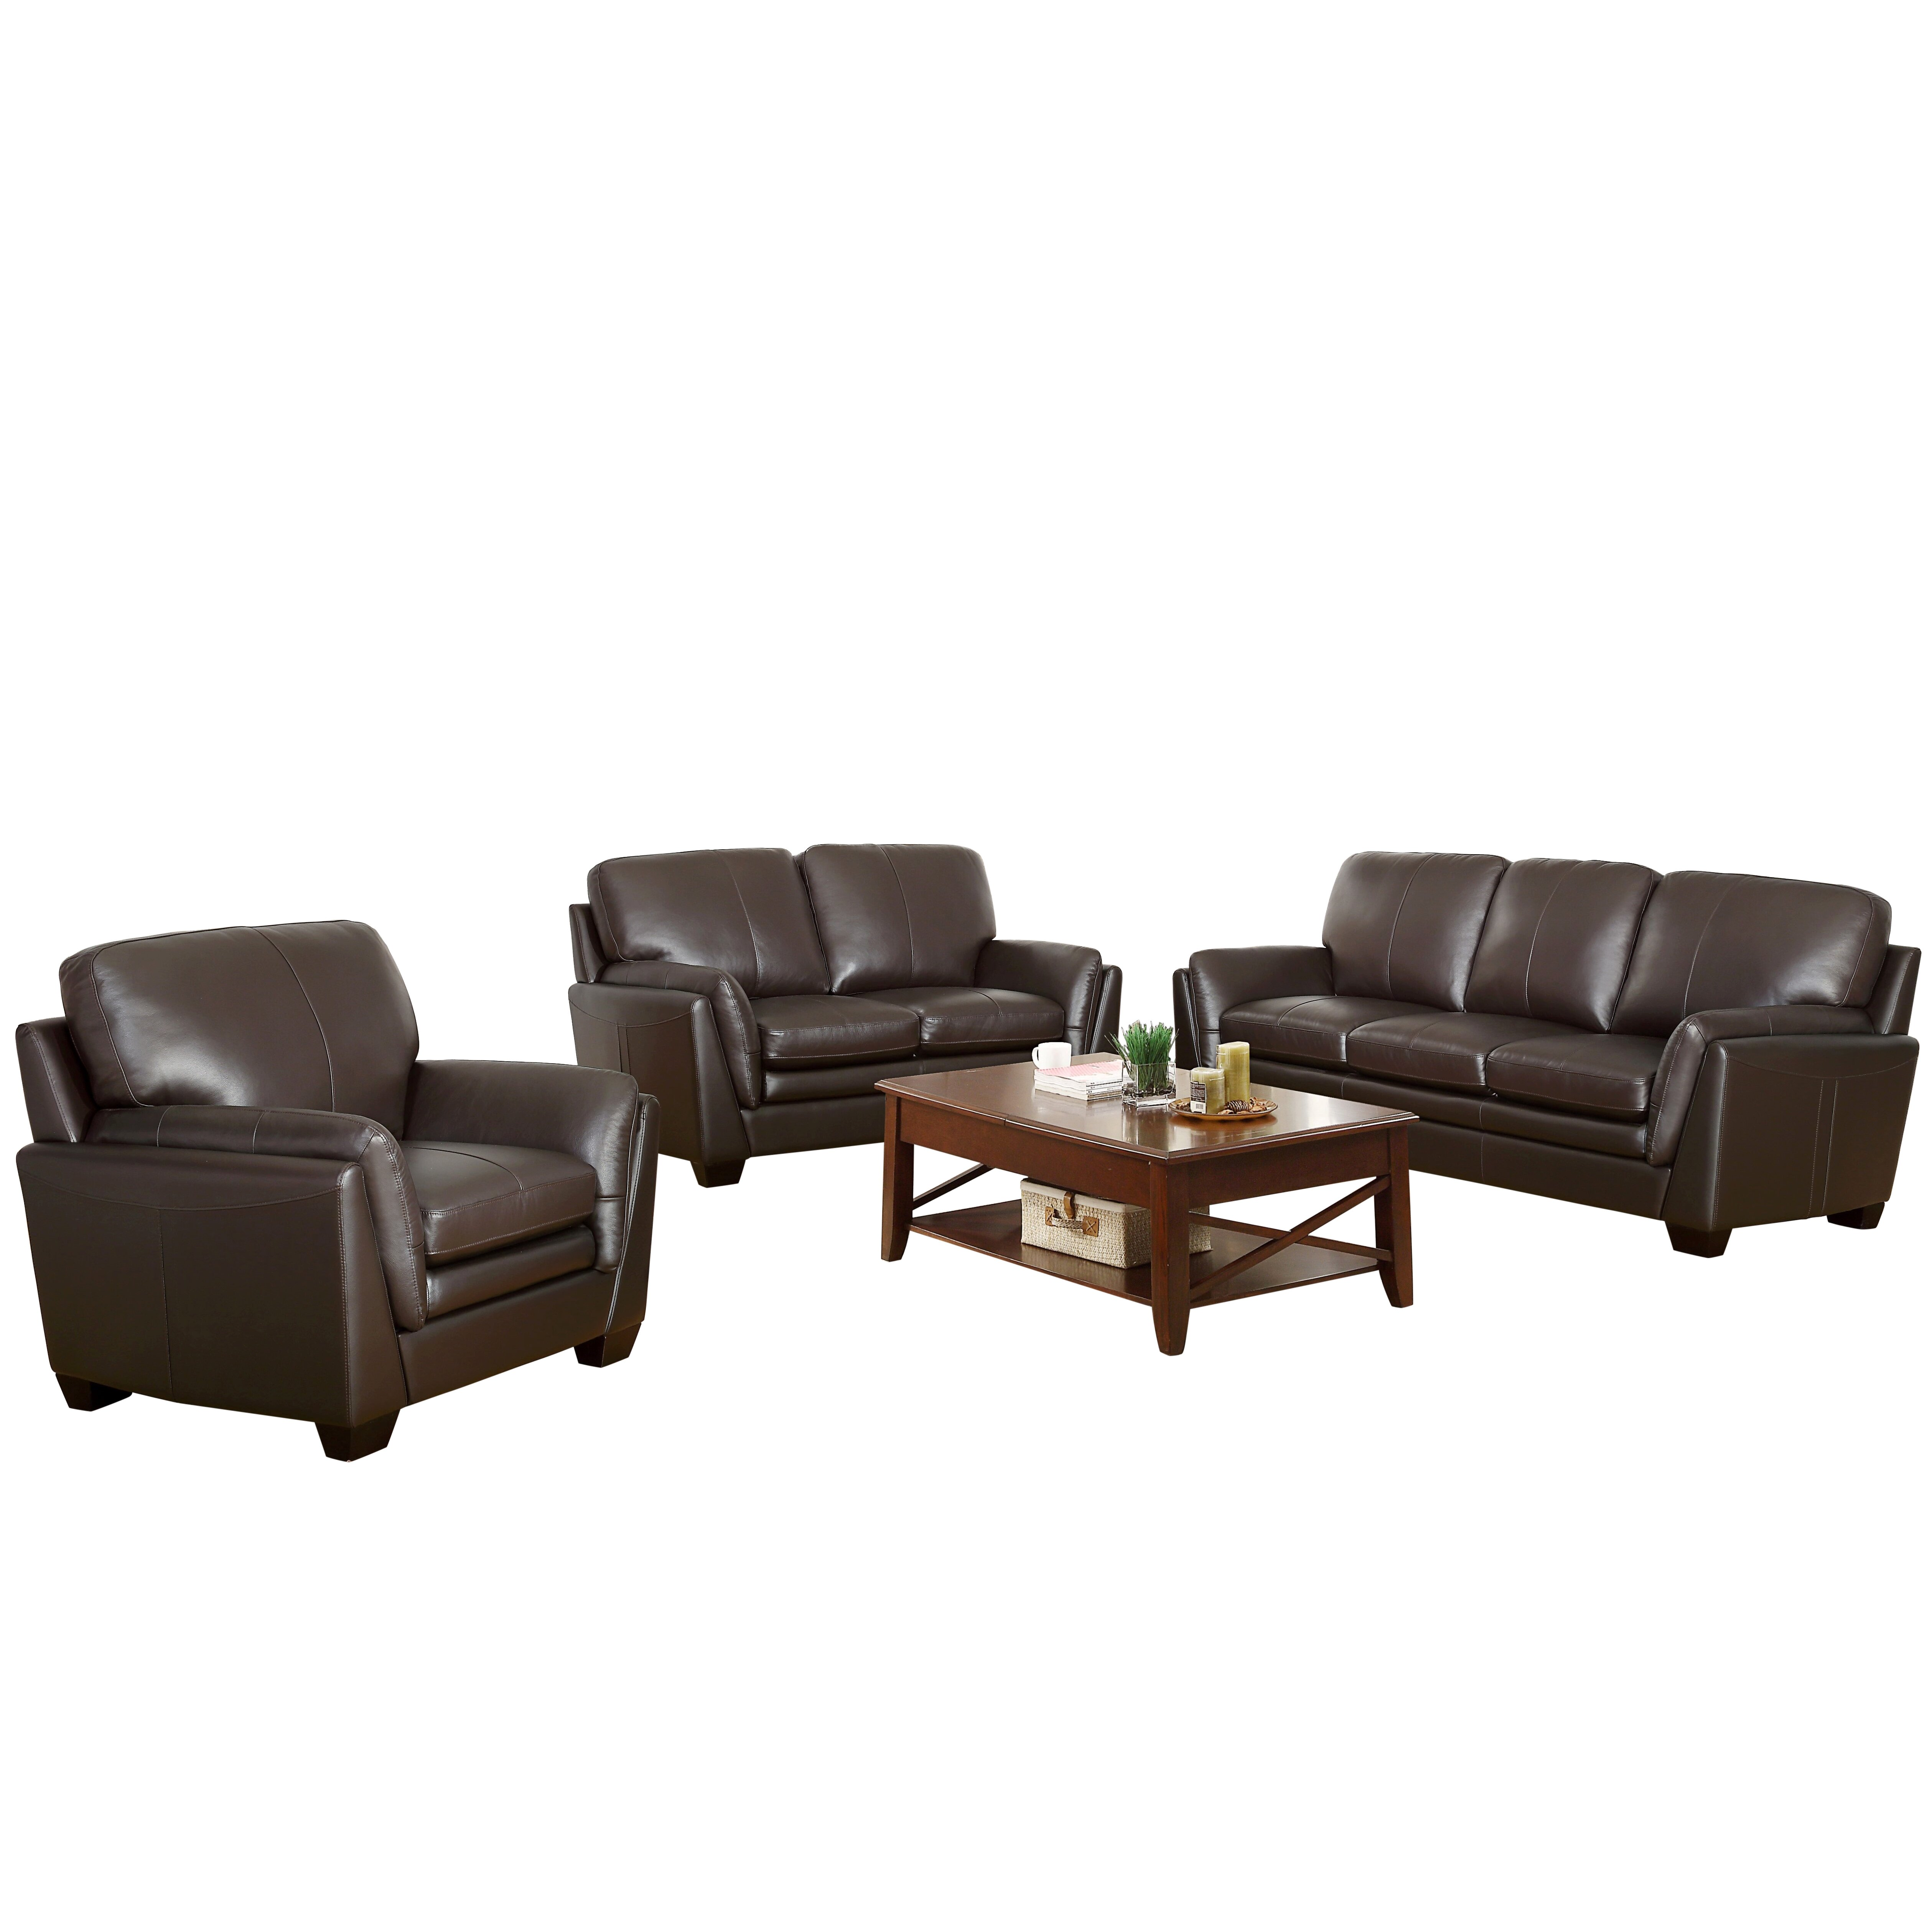 Darby home co whitstran top grain leather sofa and for Sofa armchair